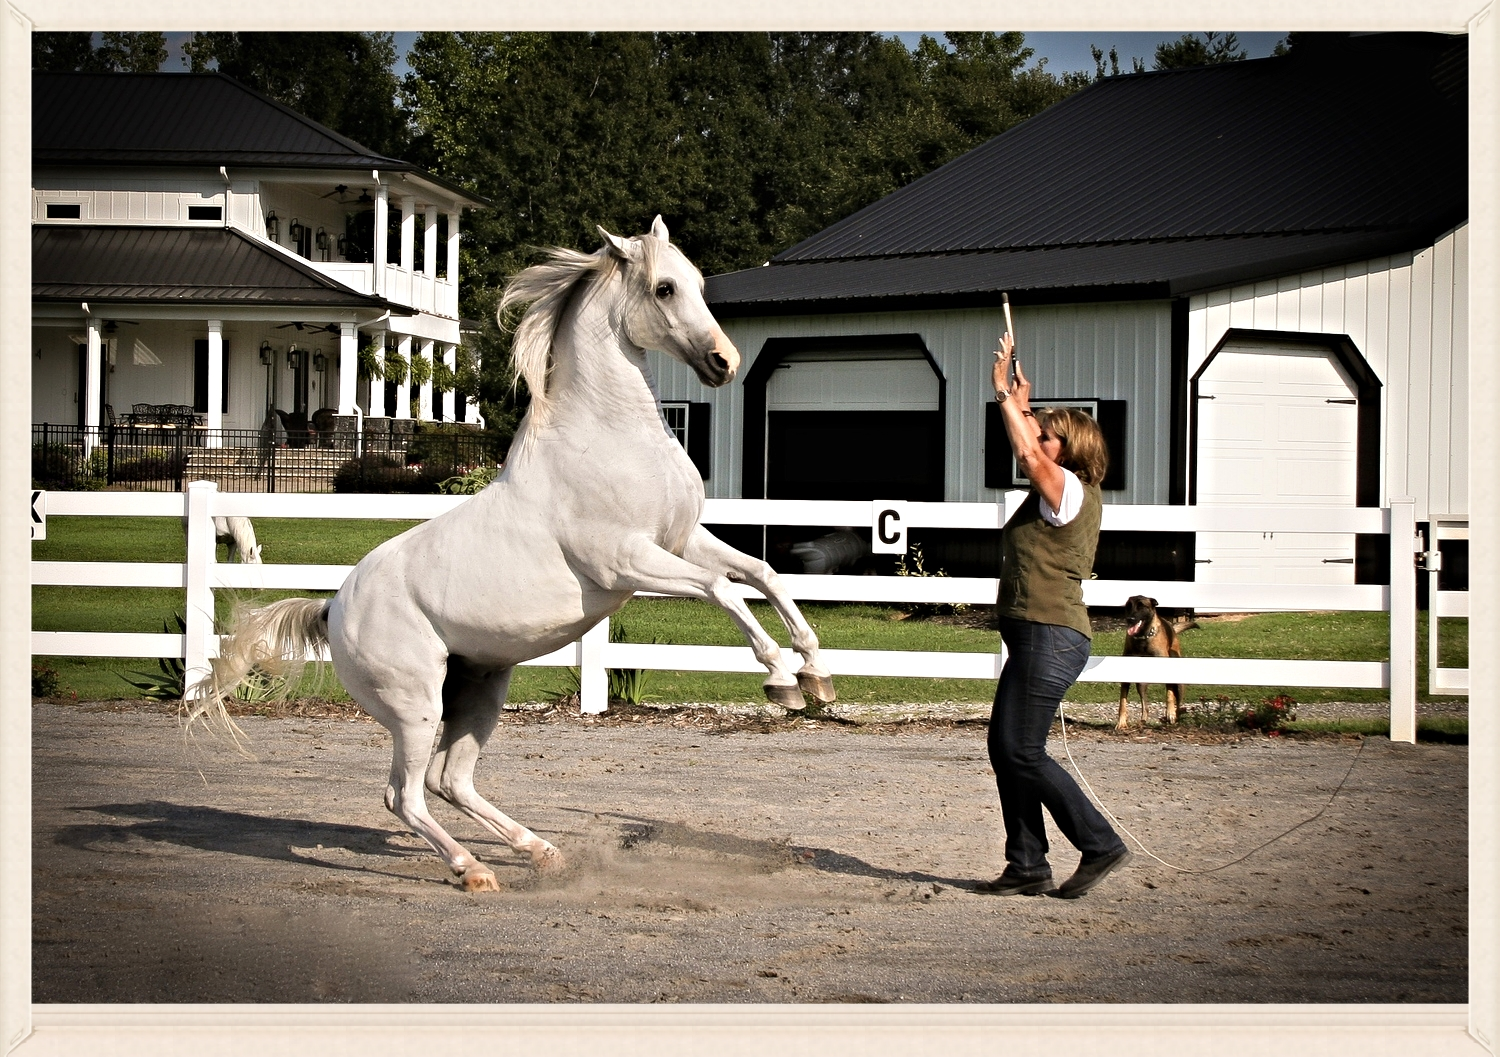 Once you have the connection, your horse will preform from the bond he shares with you vs. your training.